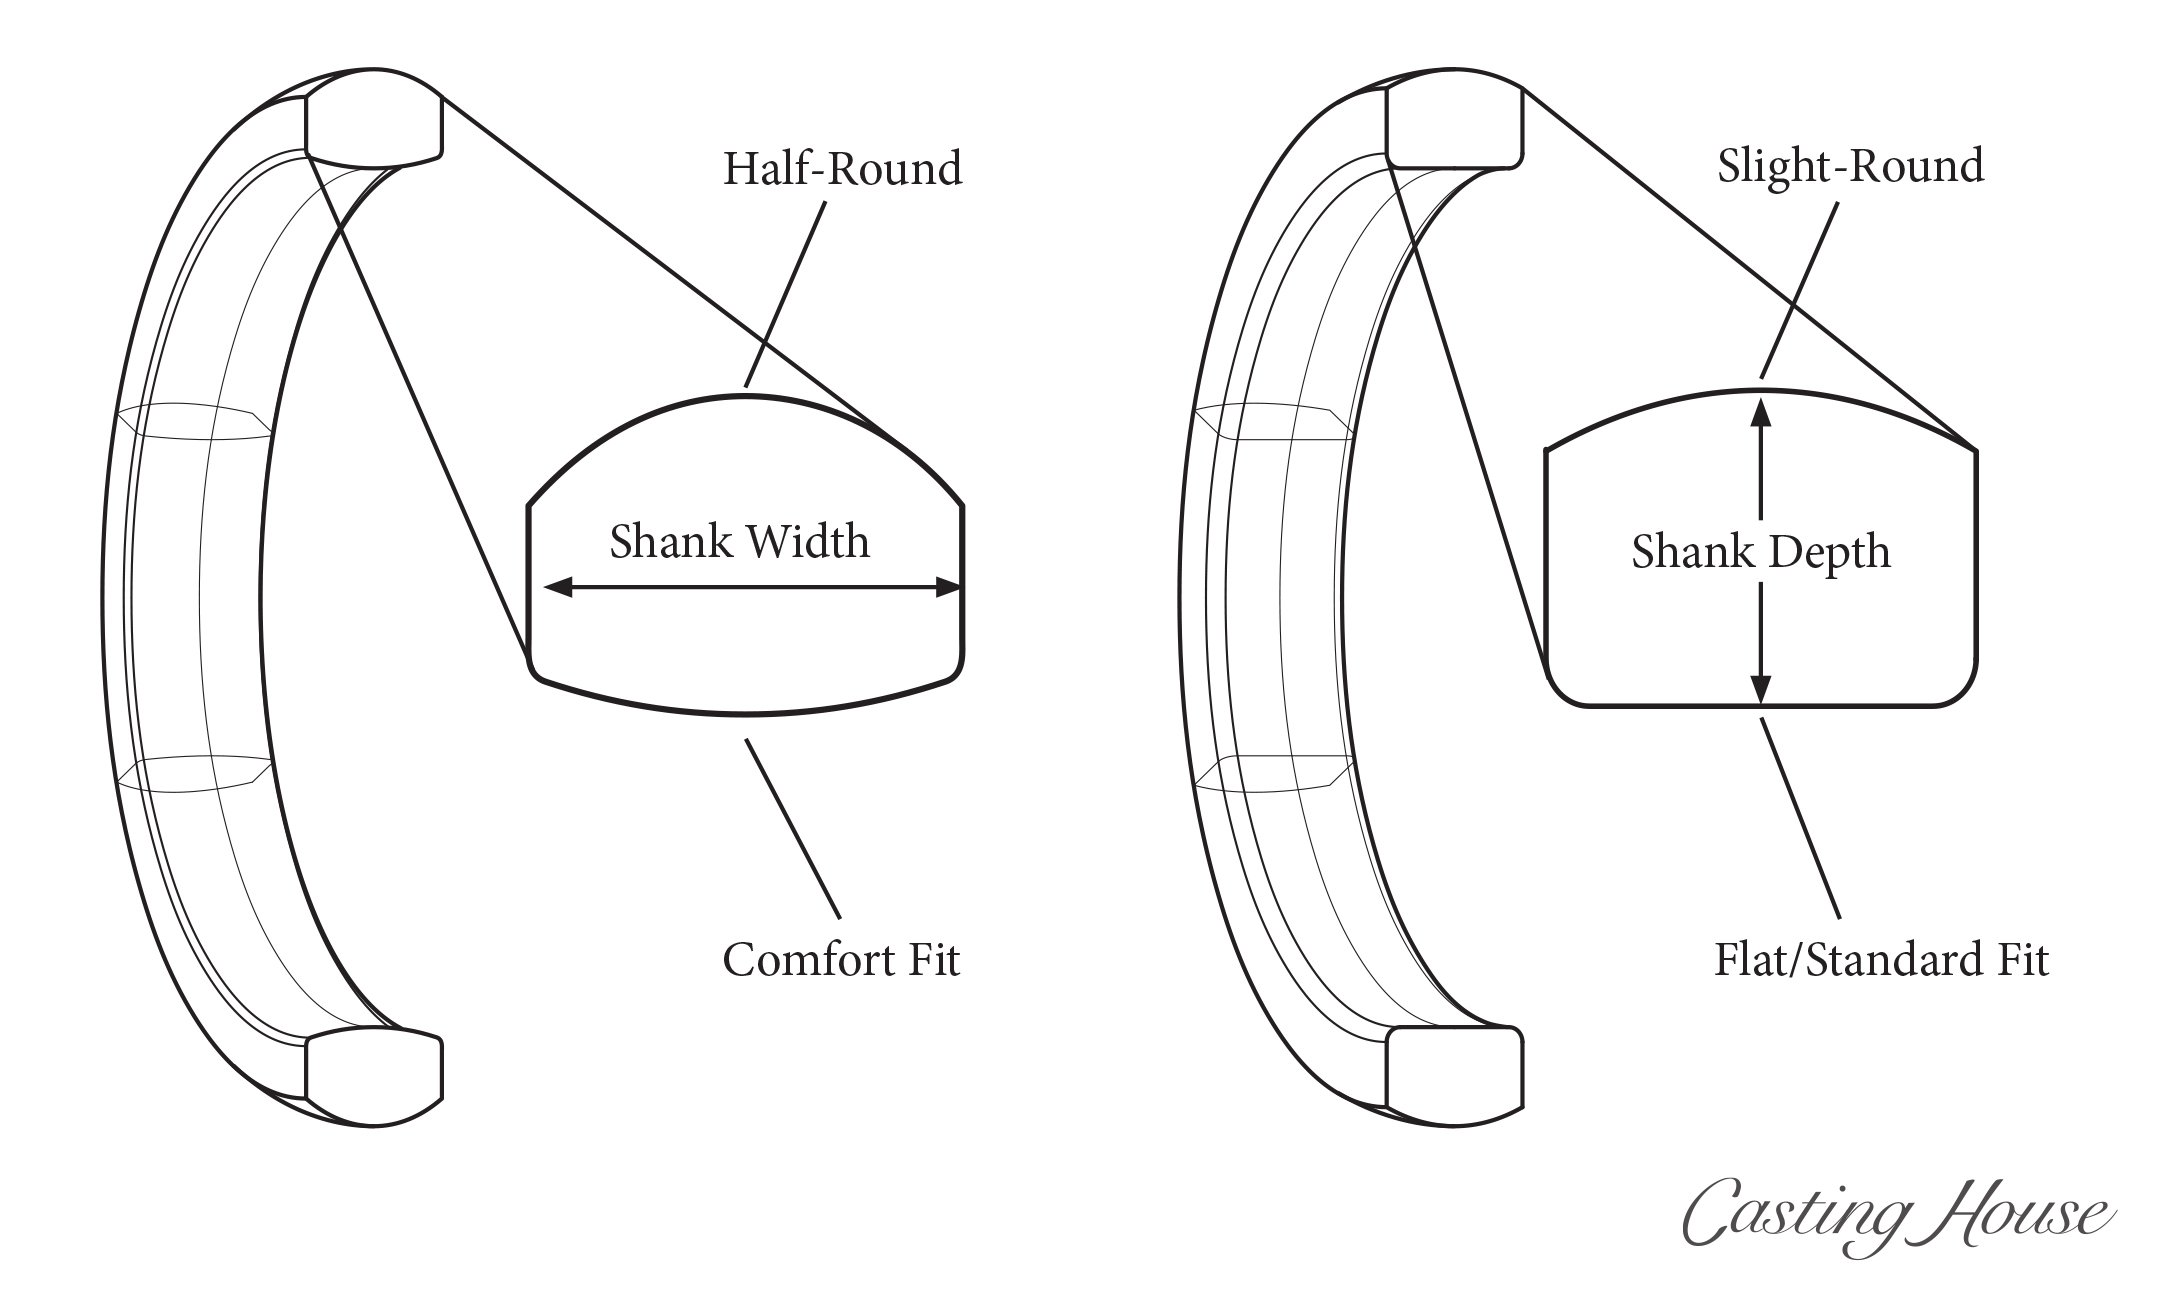 anatomy of a ring - shank